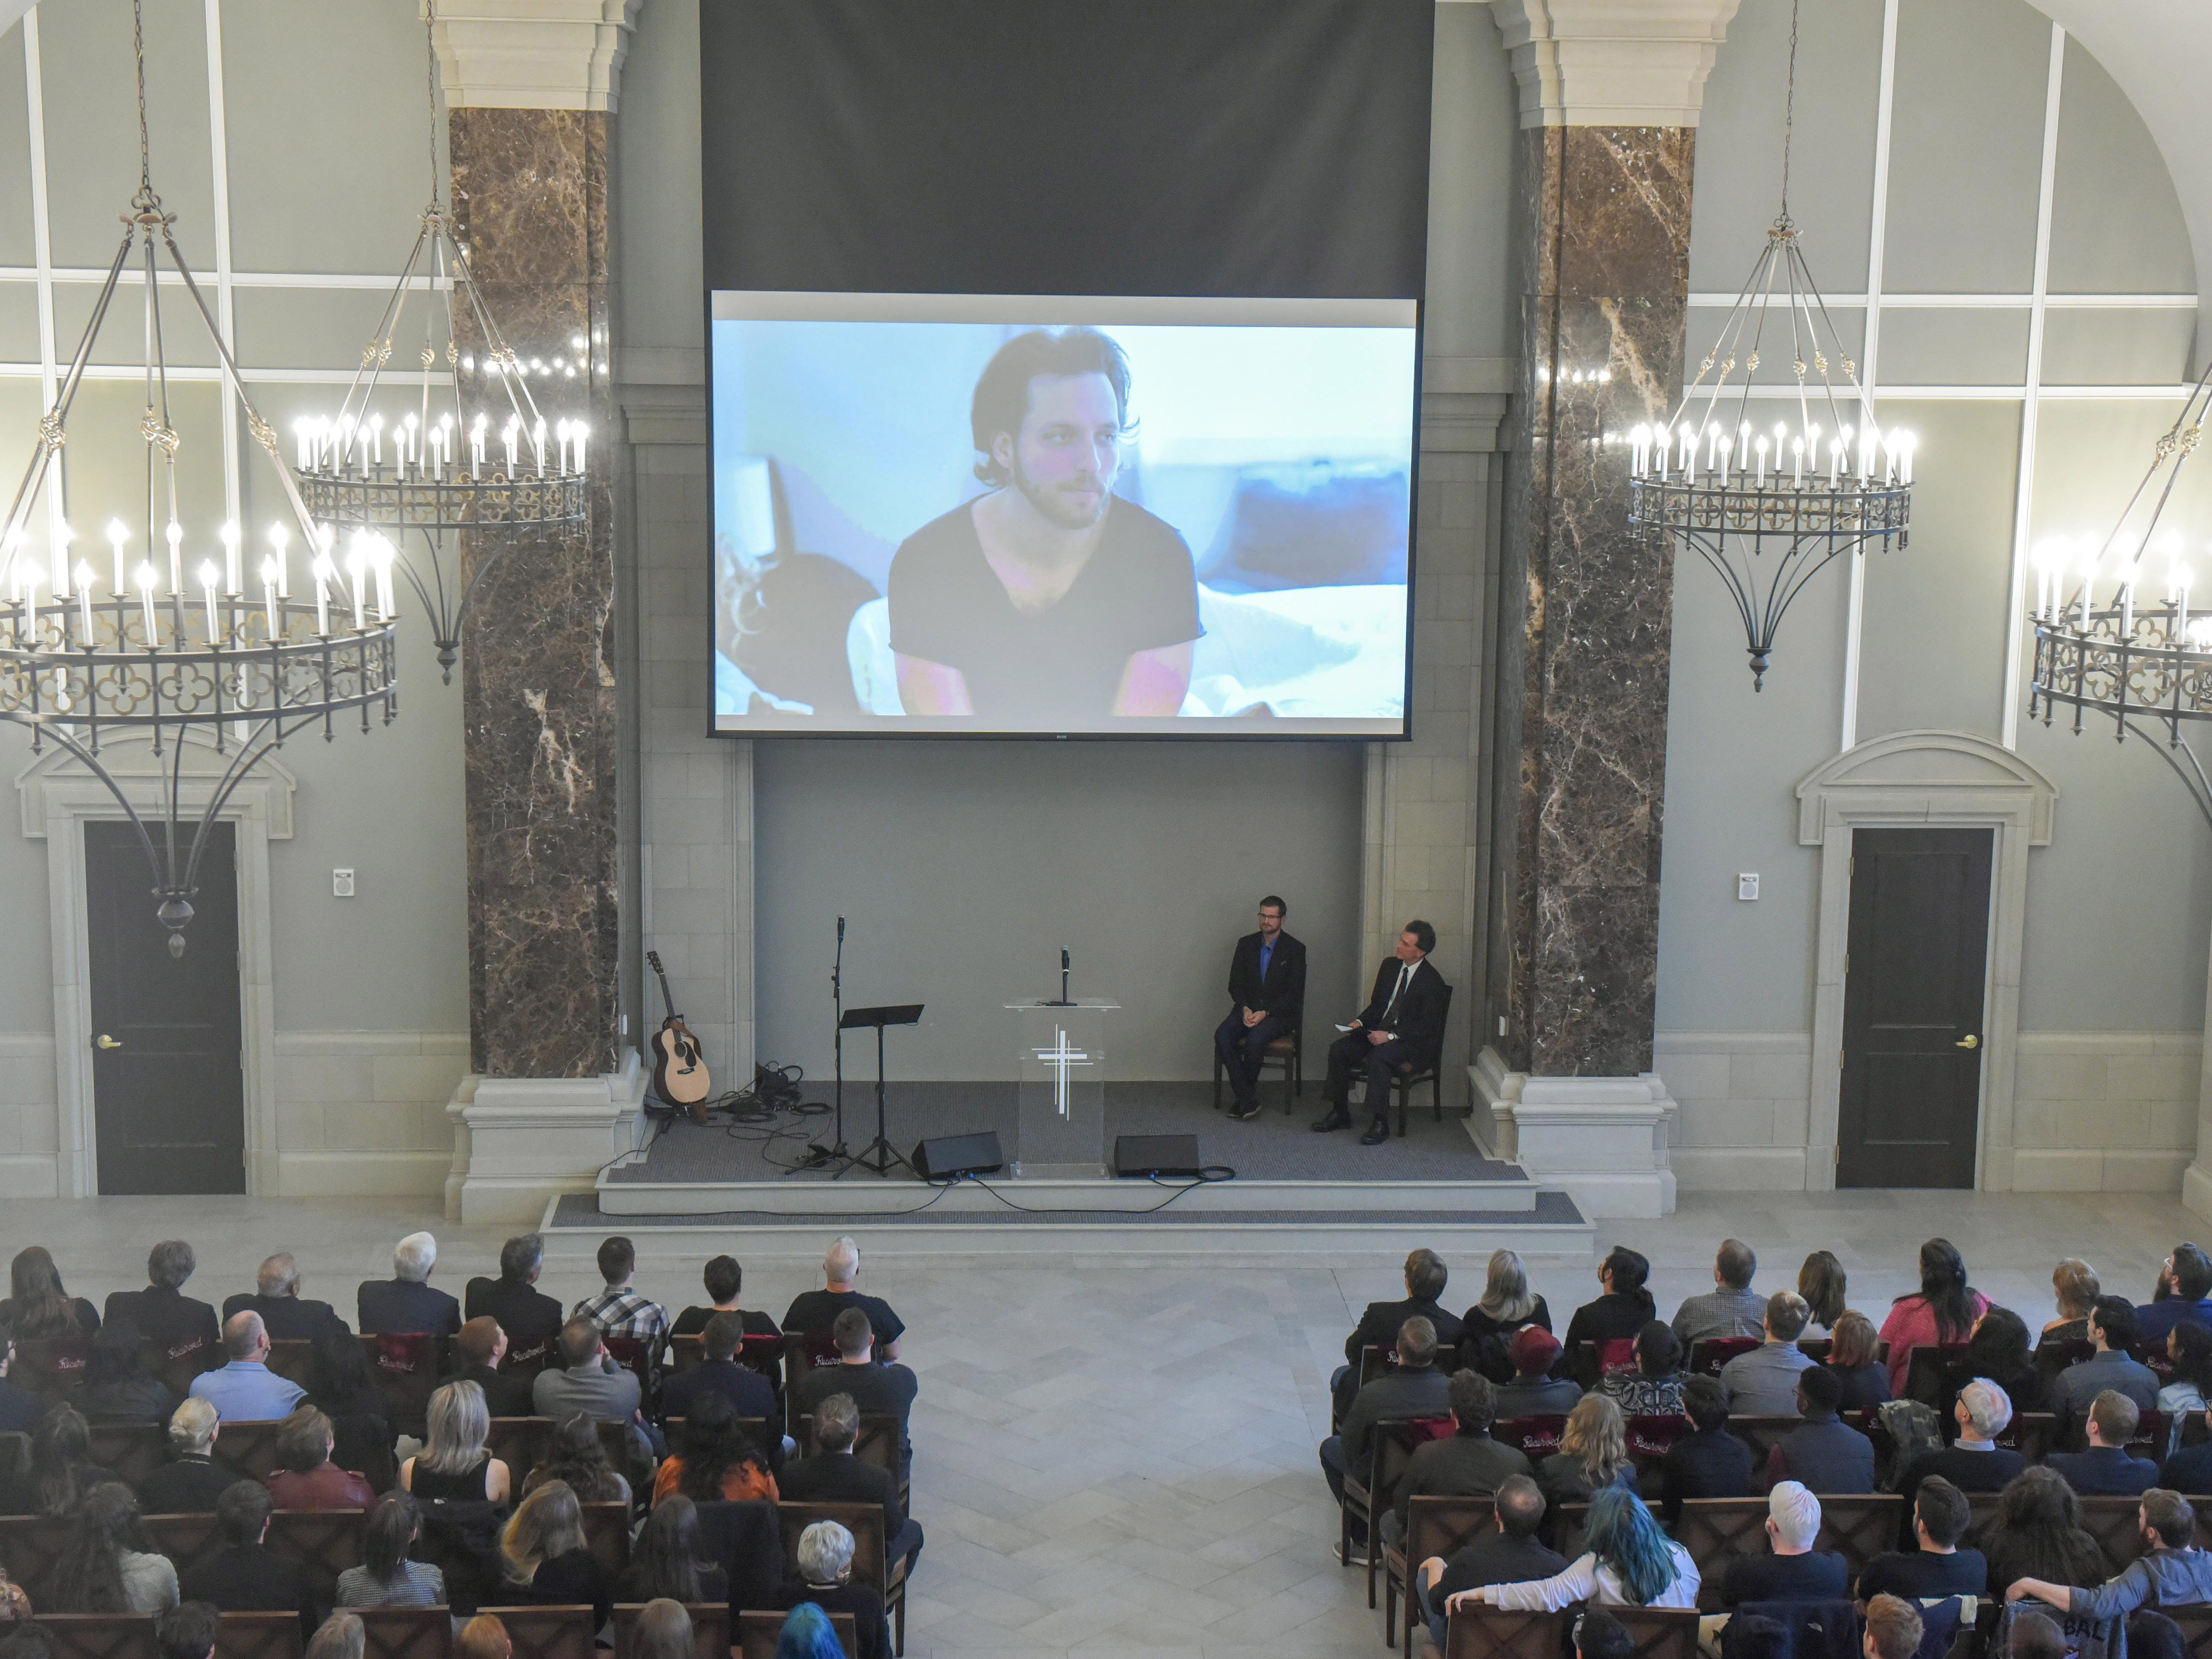 A slideshow plays during a memorial service for Kyle Yorlets at Belmont University in Nashville, Tenn., February 11, 2019.